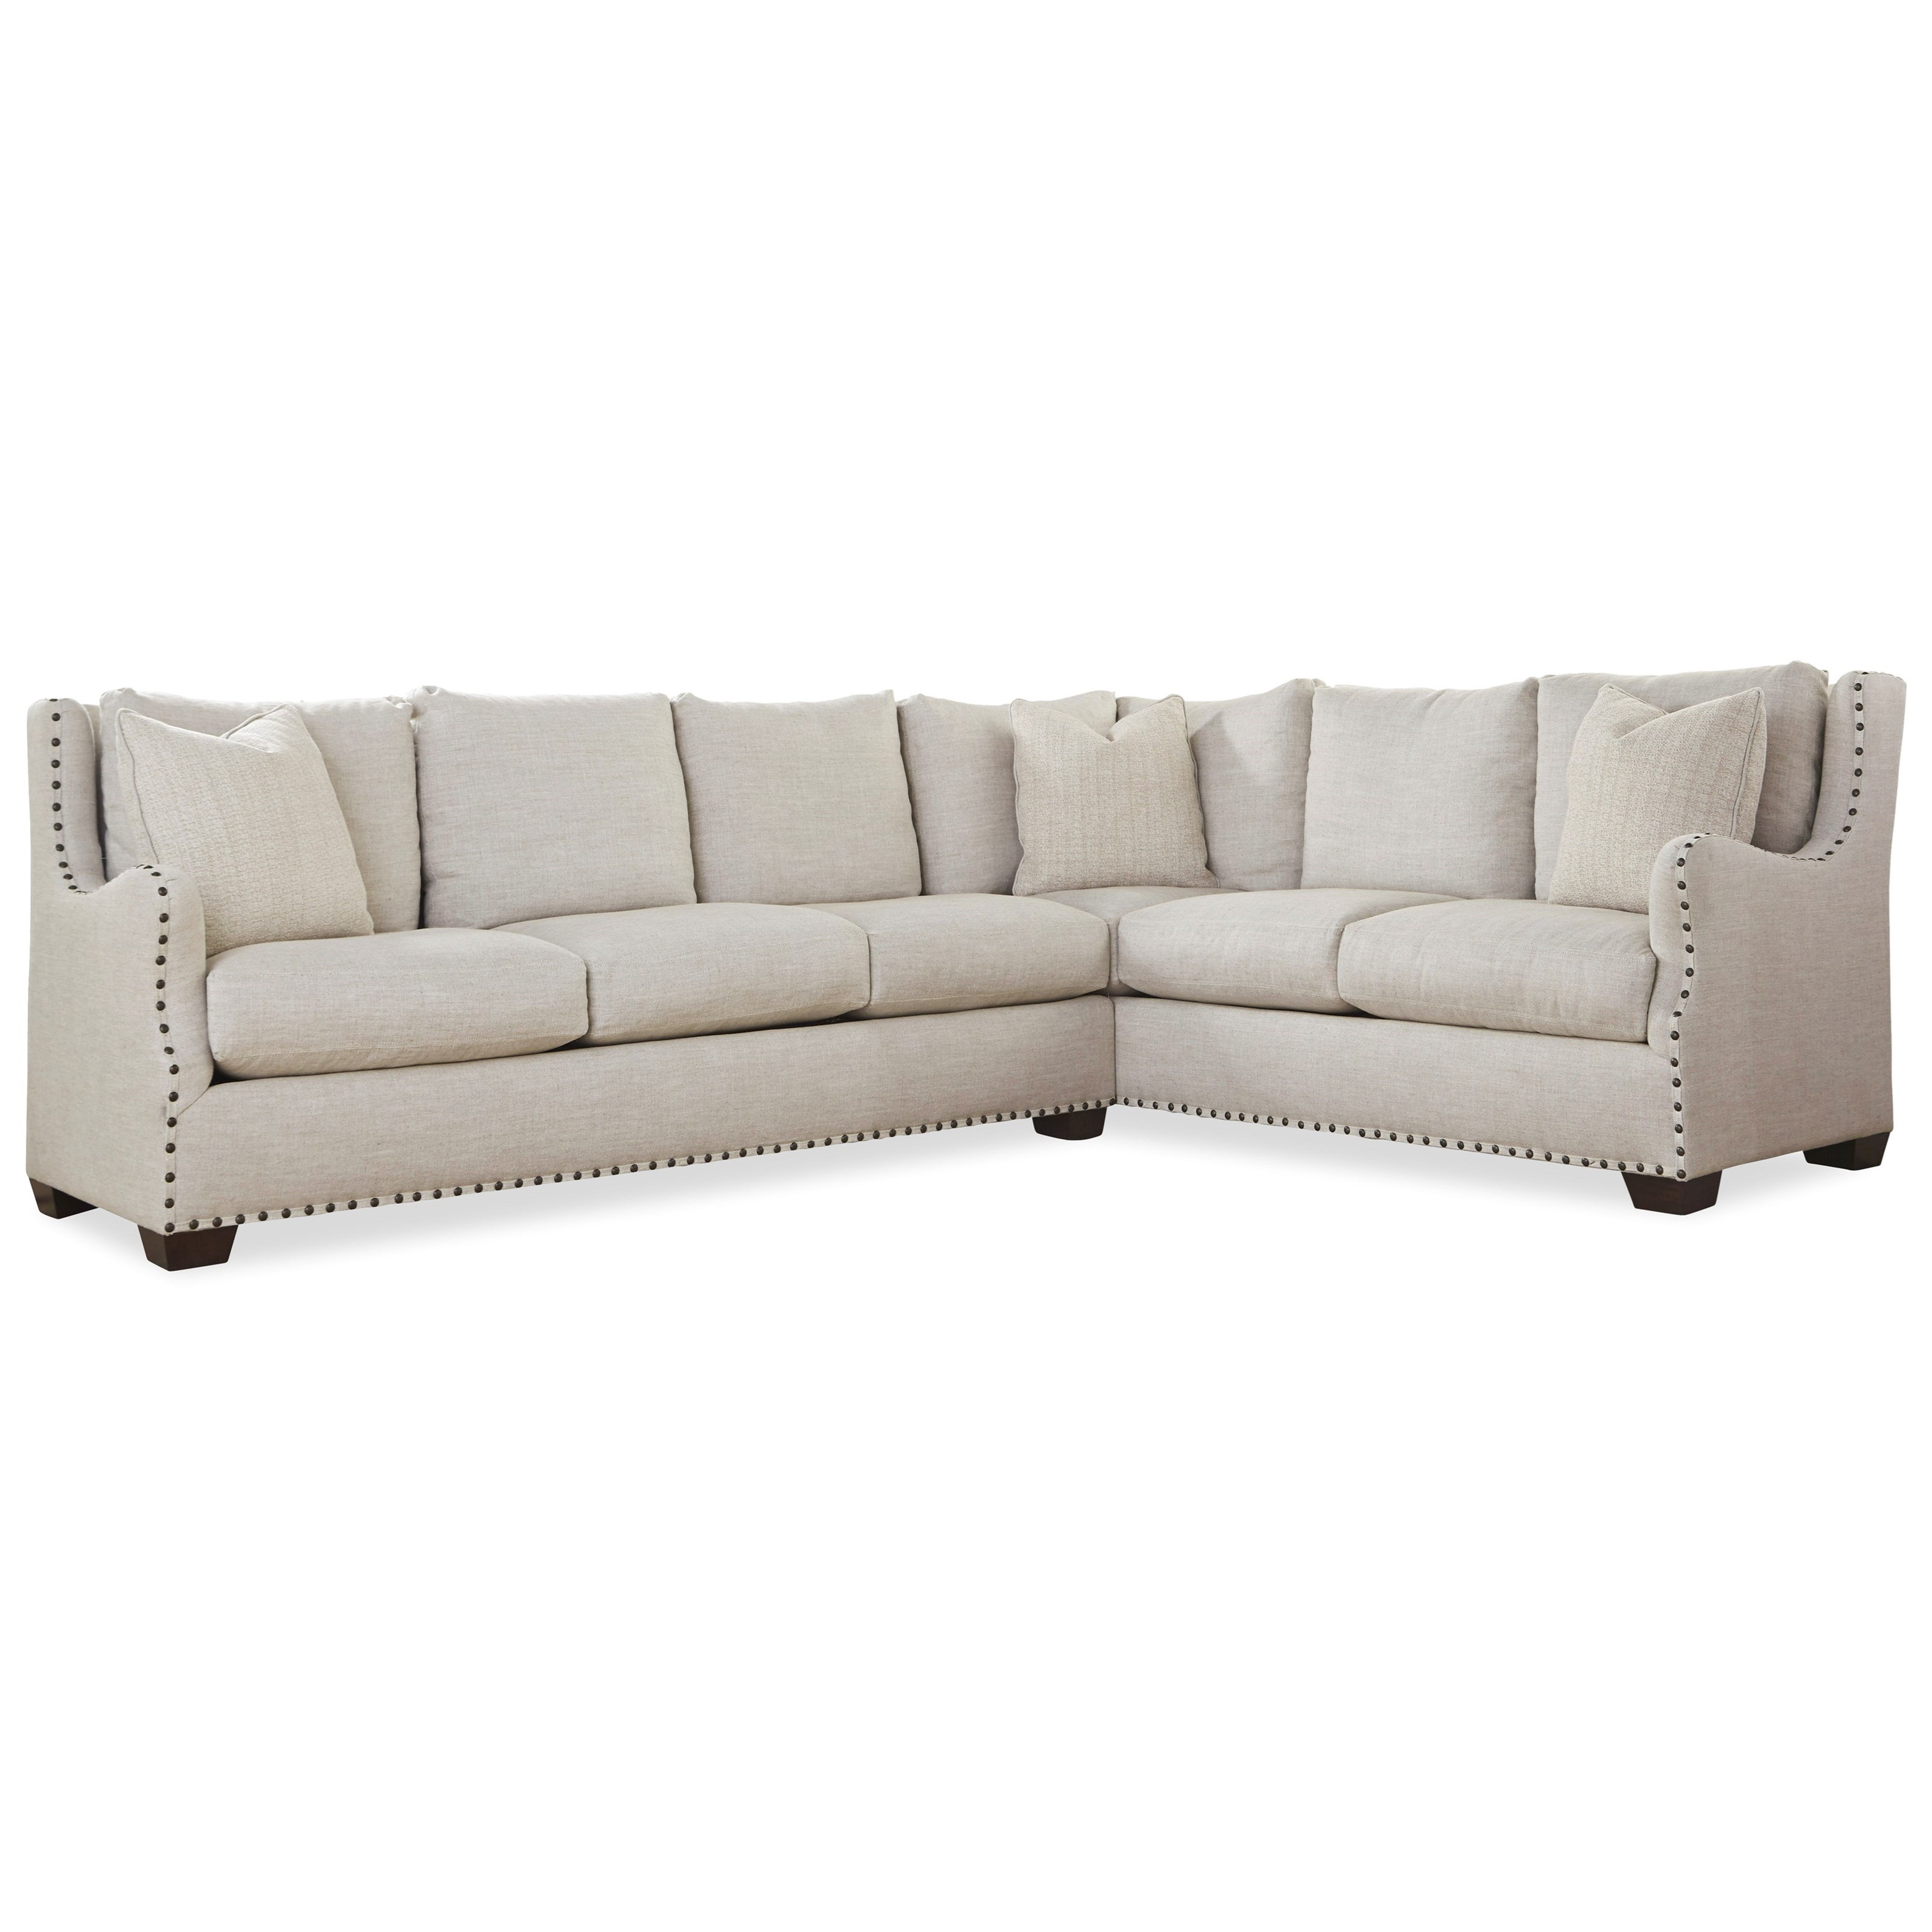 Universal connor traditional sectional sofa with nail head for Traditional sectional